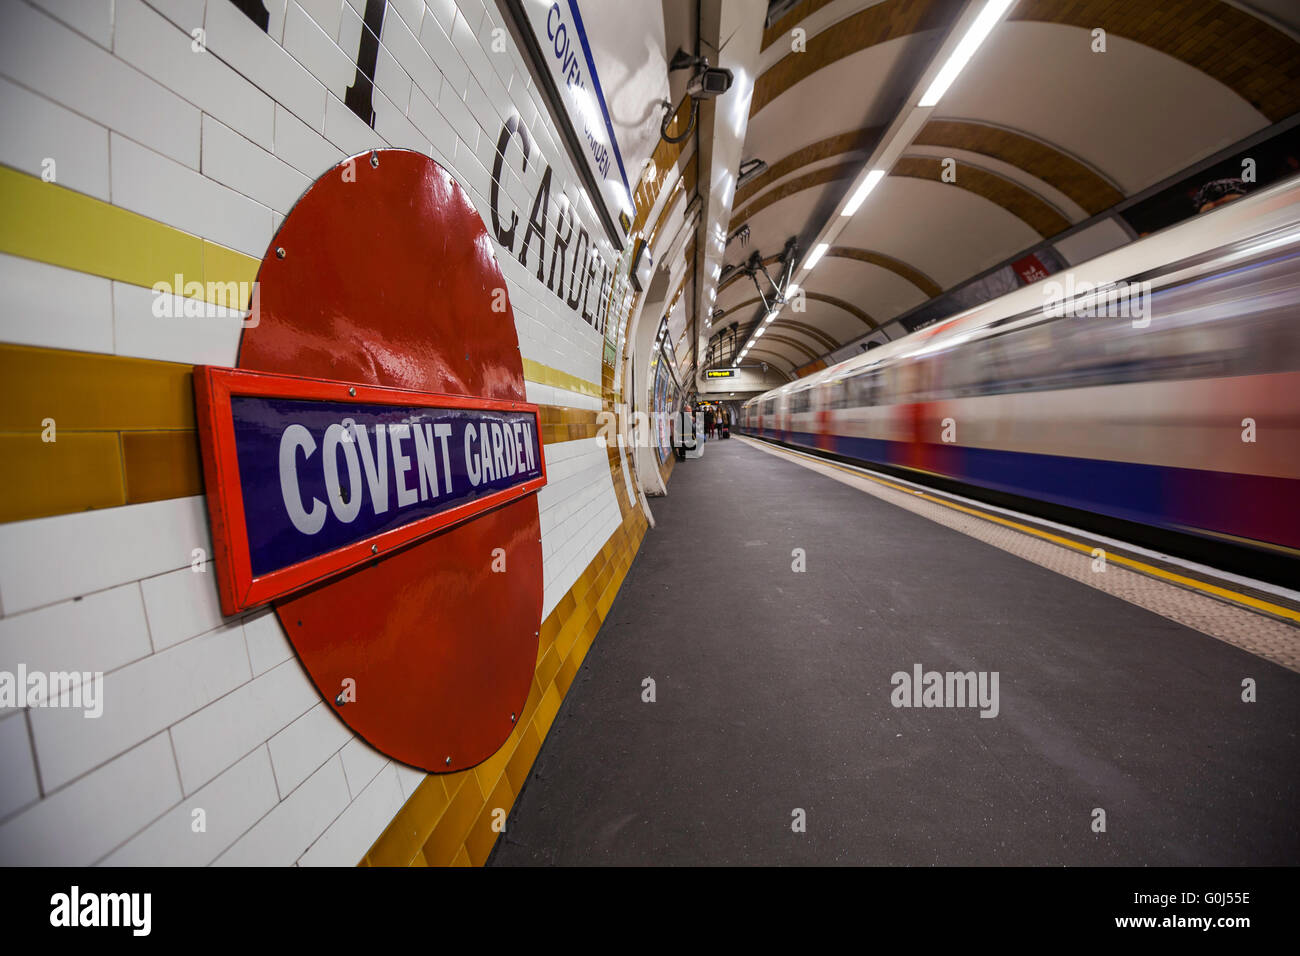 Covent Garden underground Station, London, UK, shot while a train is leaving the station - Stock Image